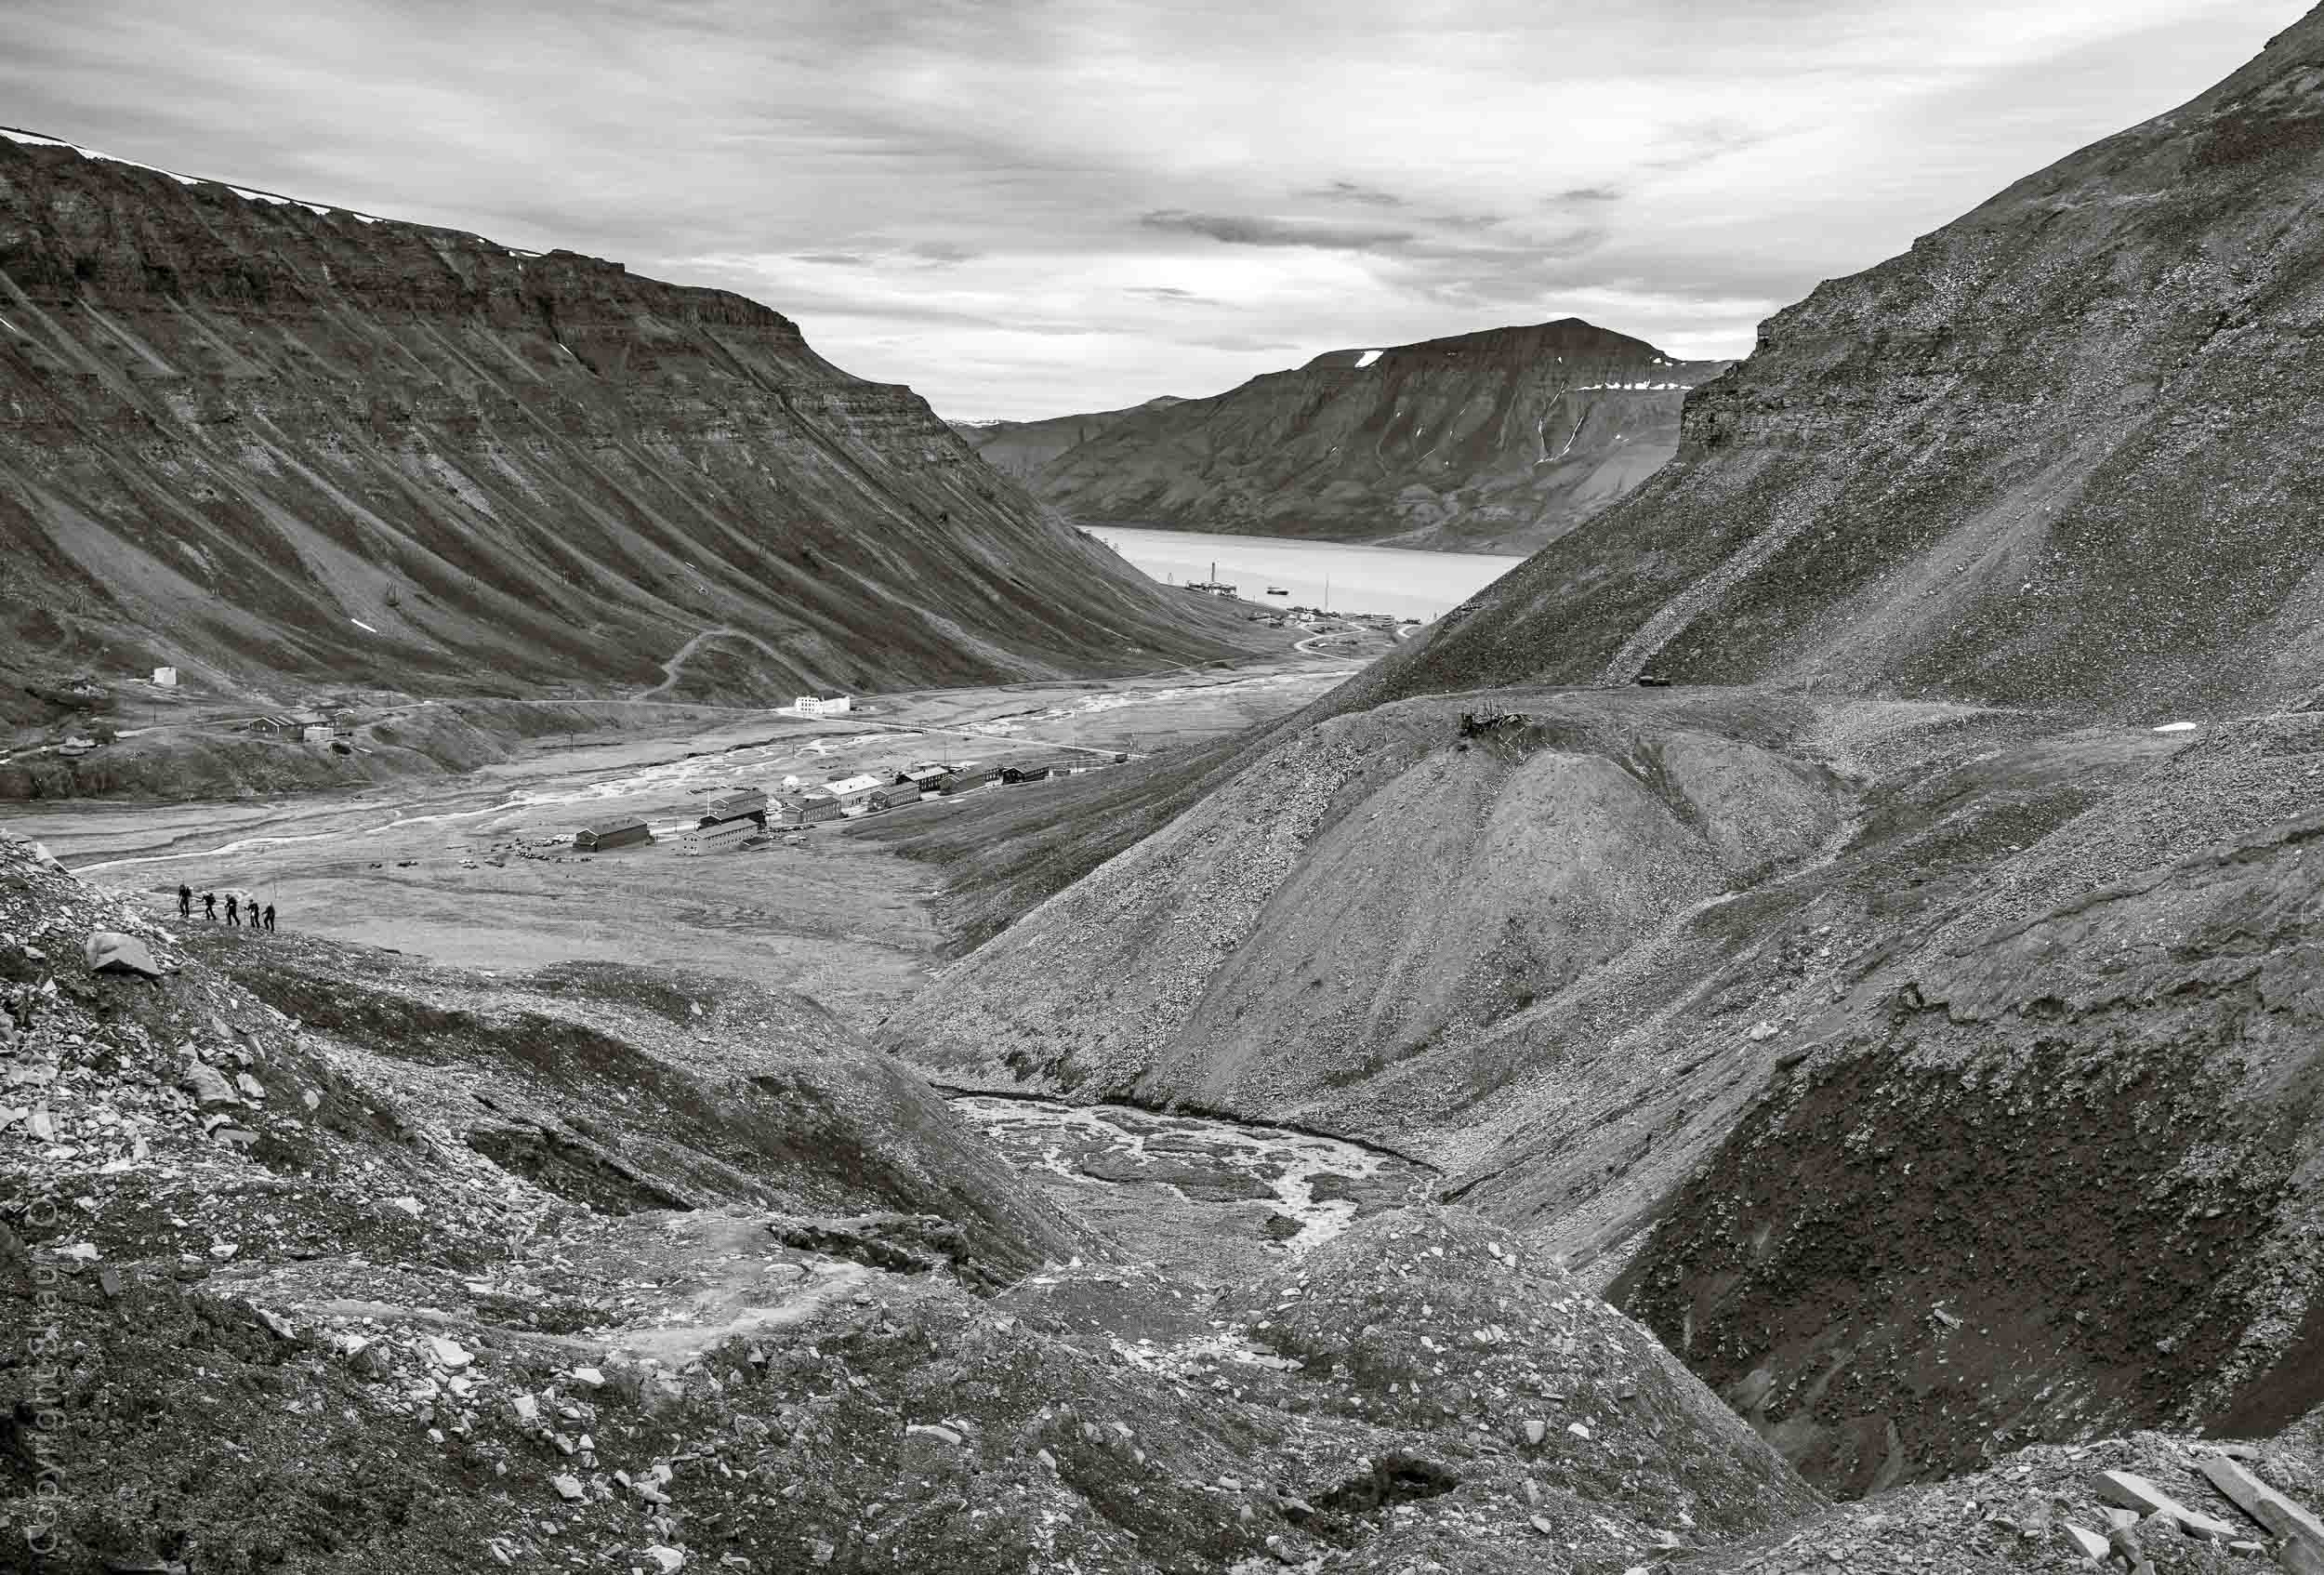 Nybyen and Mine #2 tailings piles